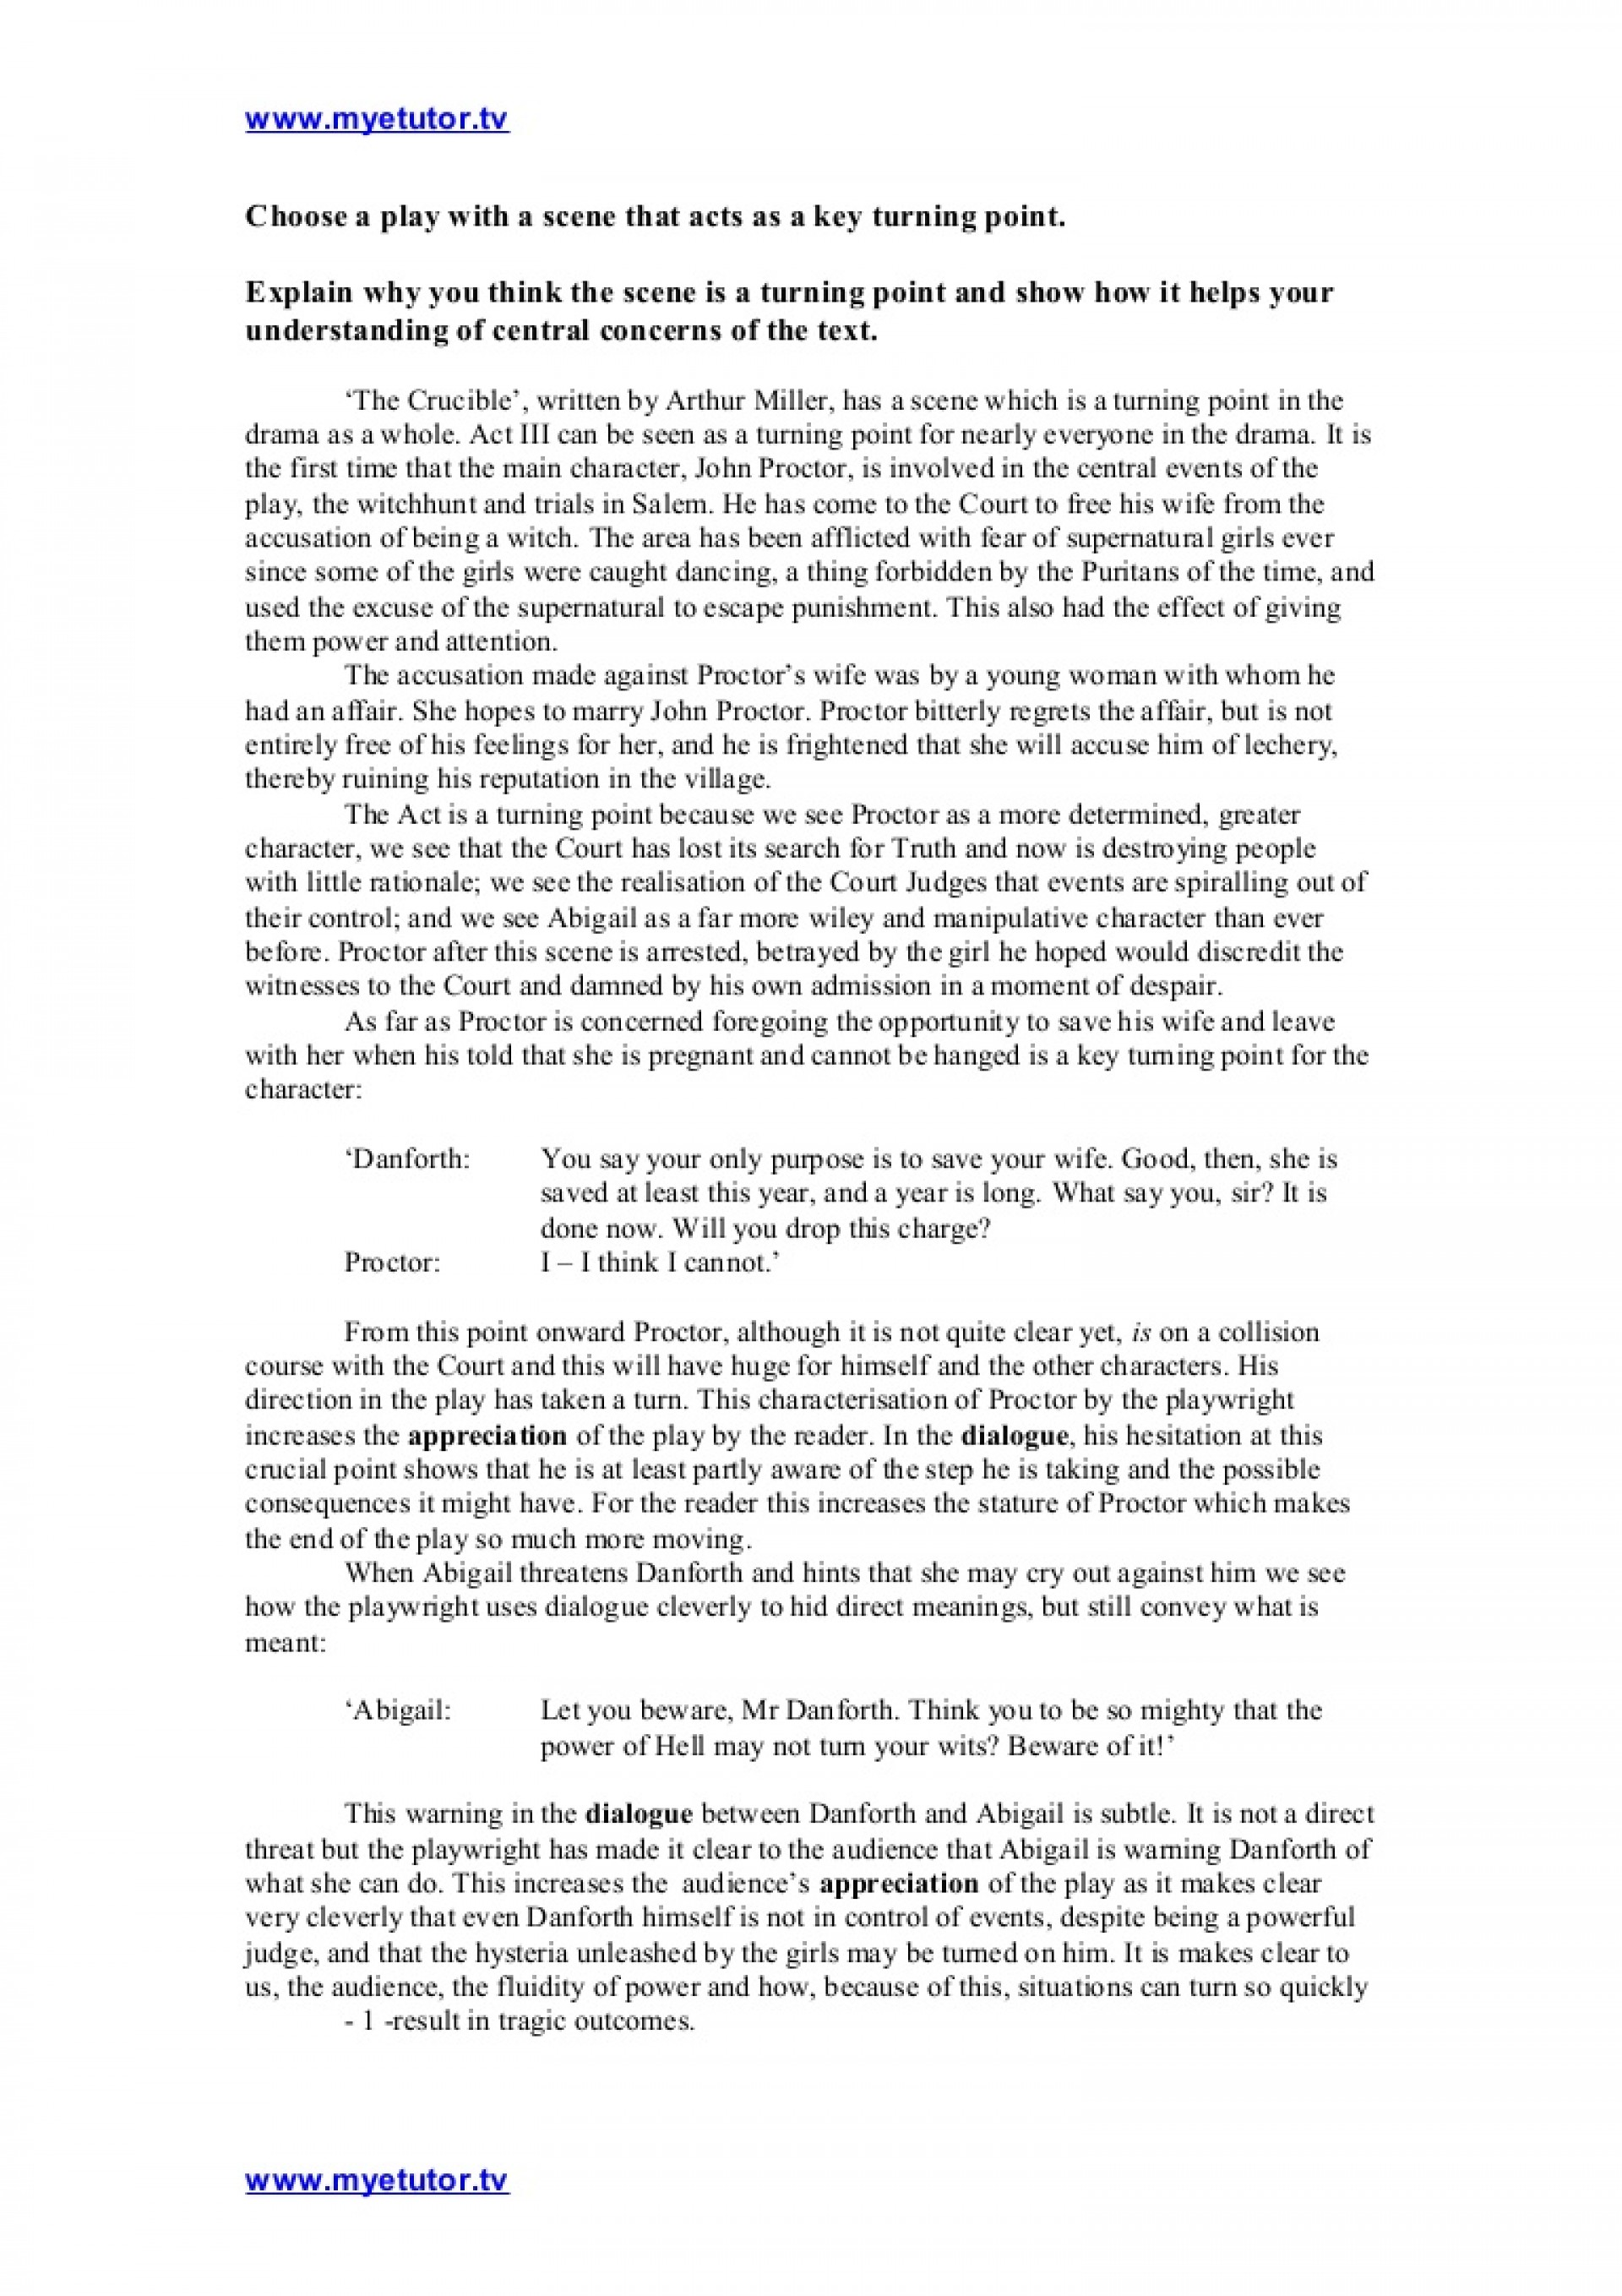 003 Thecrucible Keysceneexemplaressay Phpapp01 Thumbnail Essay On The Crucible Phenomenal And Red Scare Reputation Questions For Act 1 1920